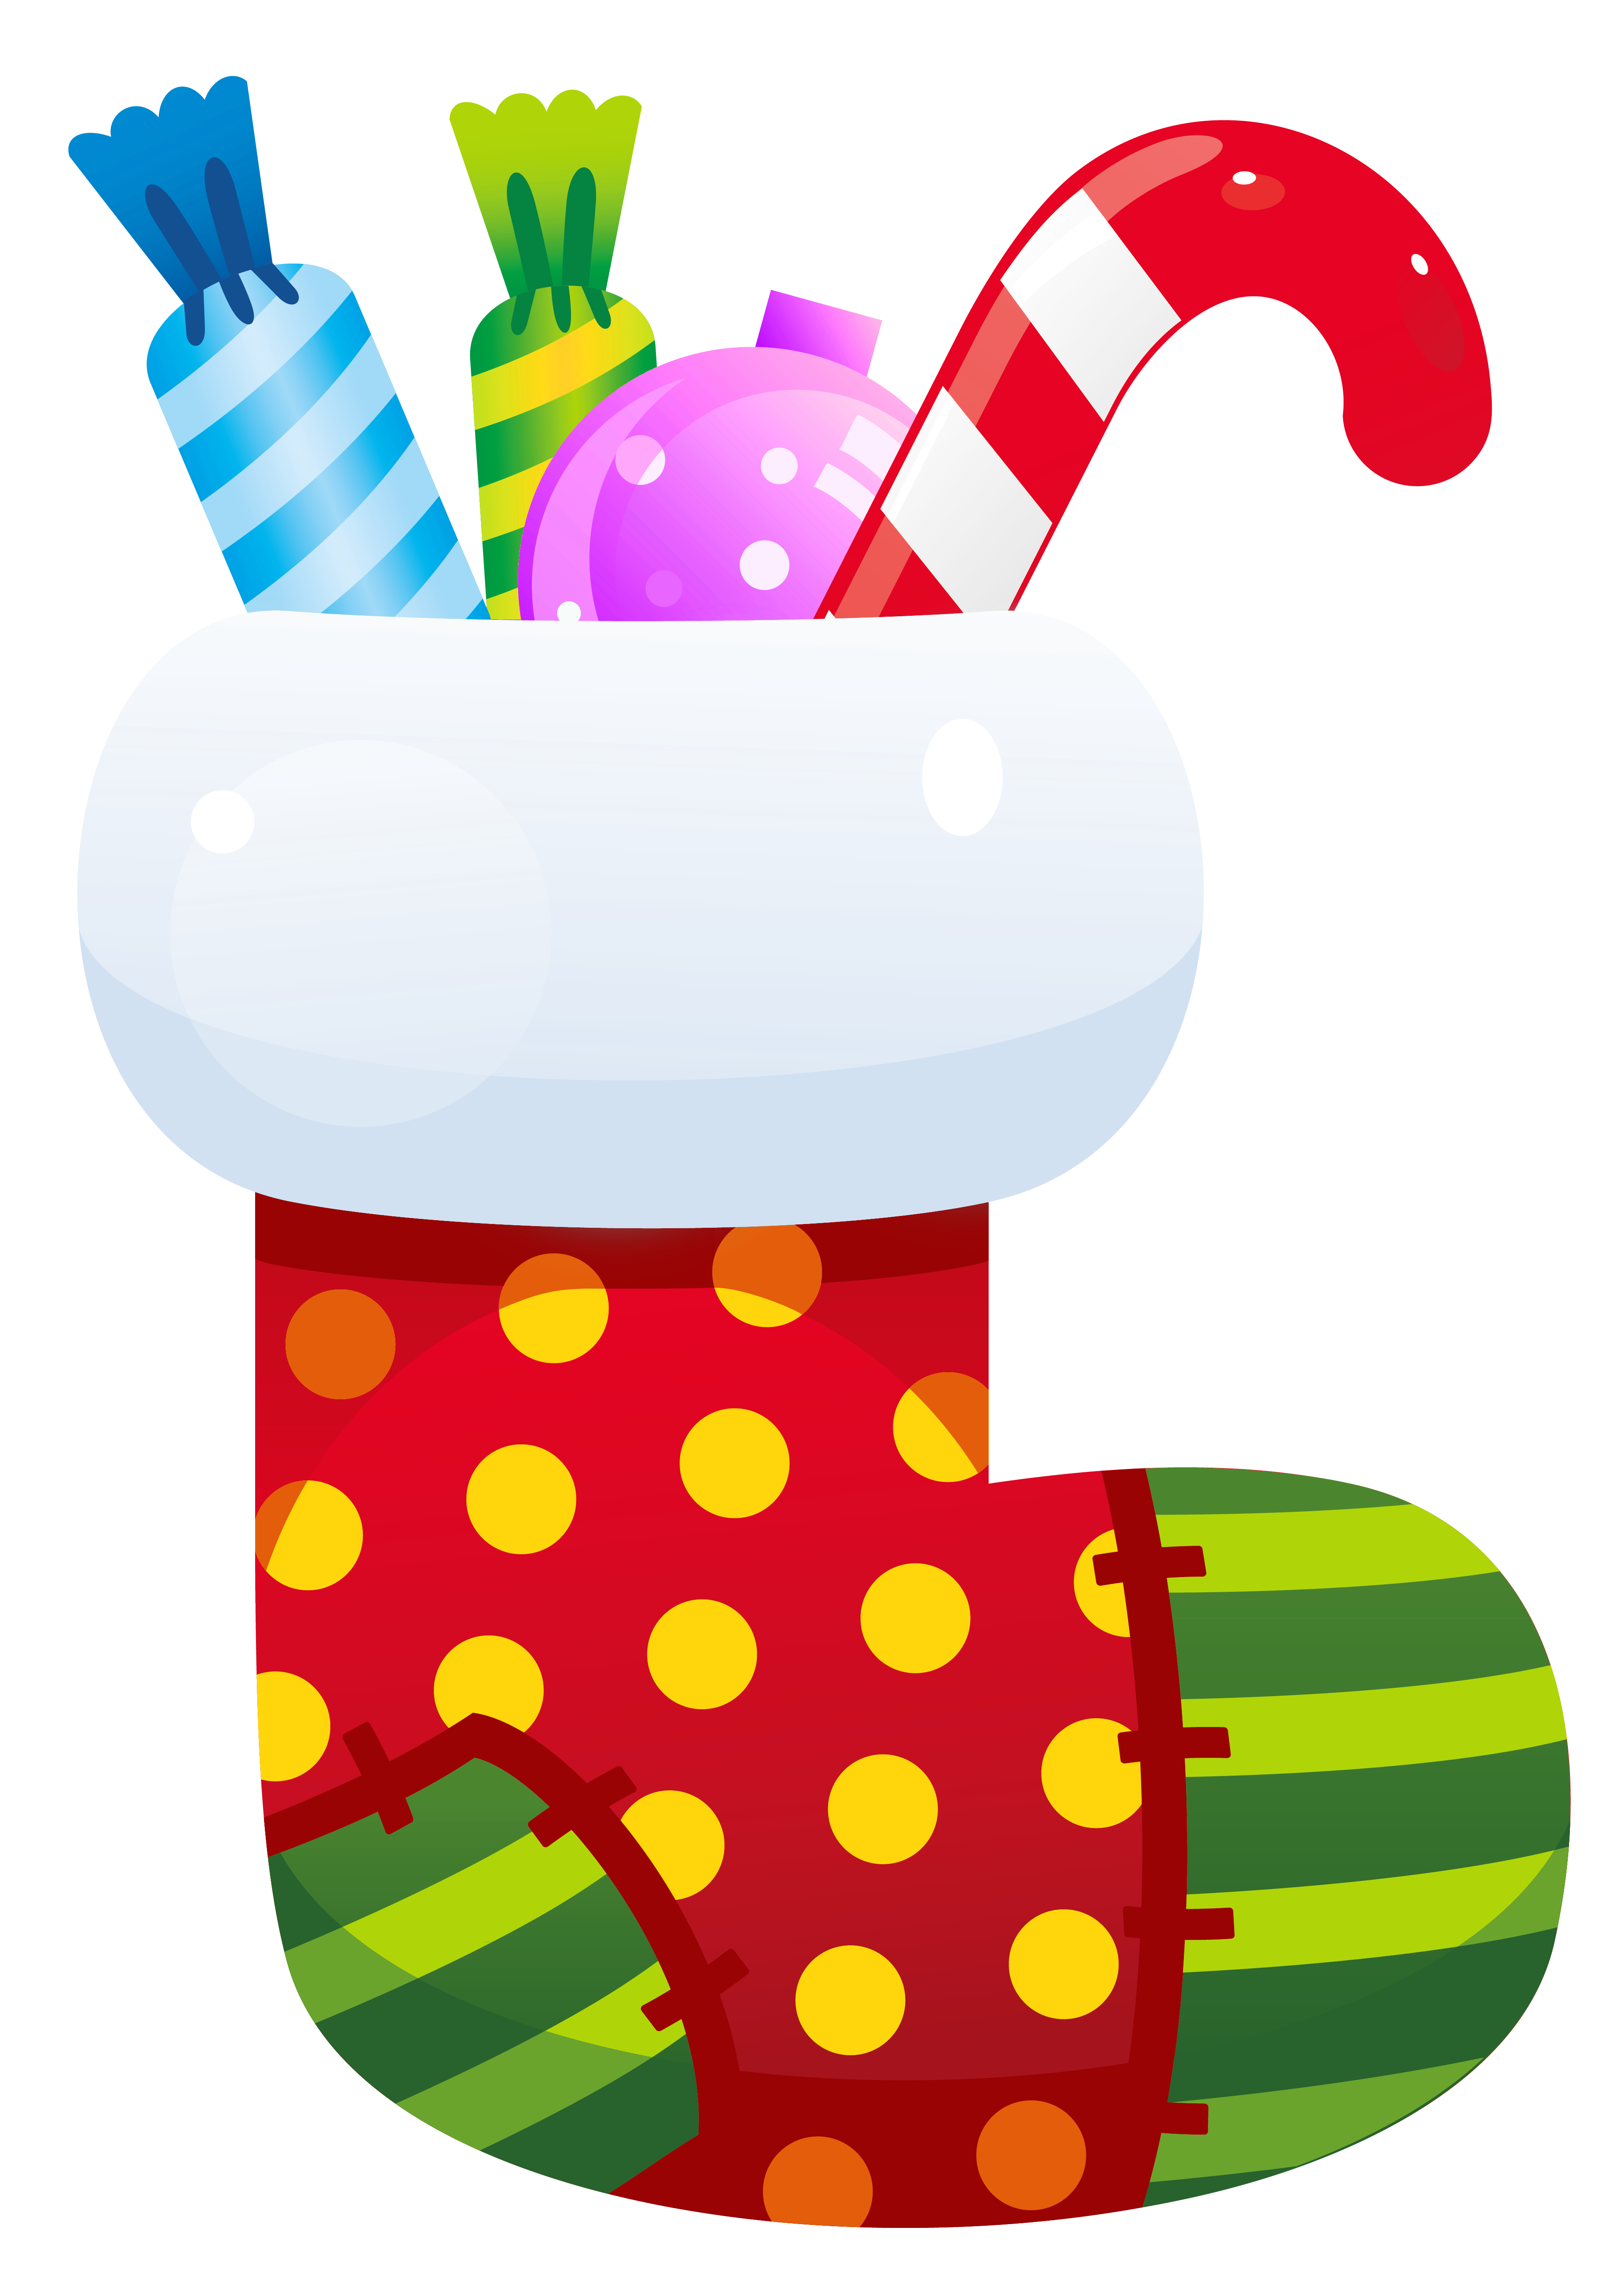 Christmas Stocking Transparent PNG Clipart.